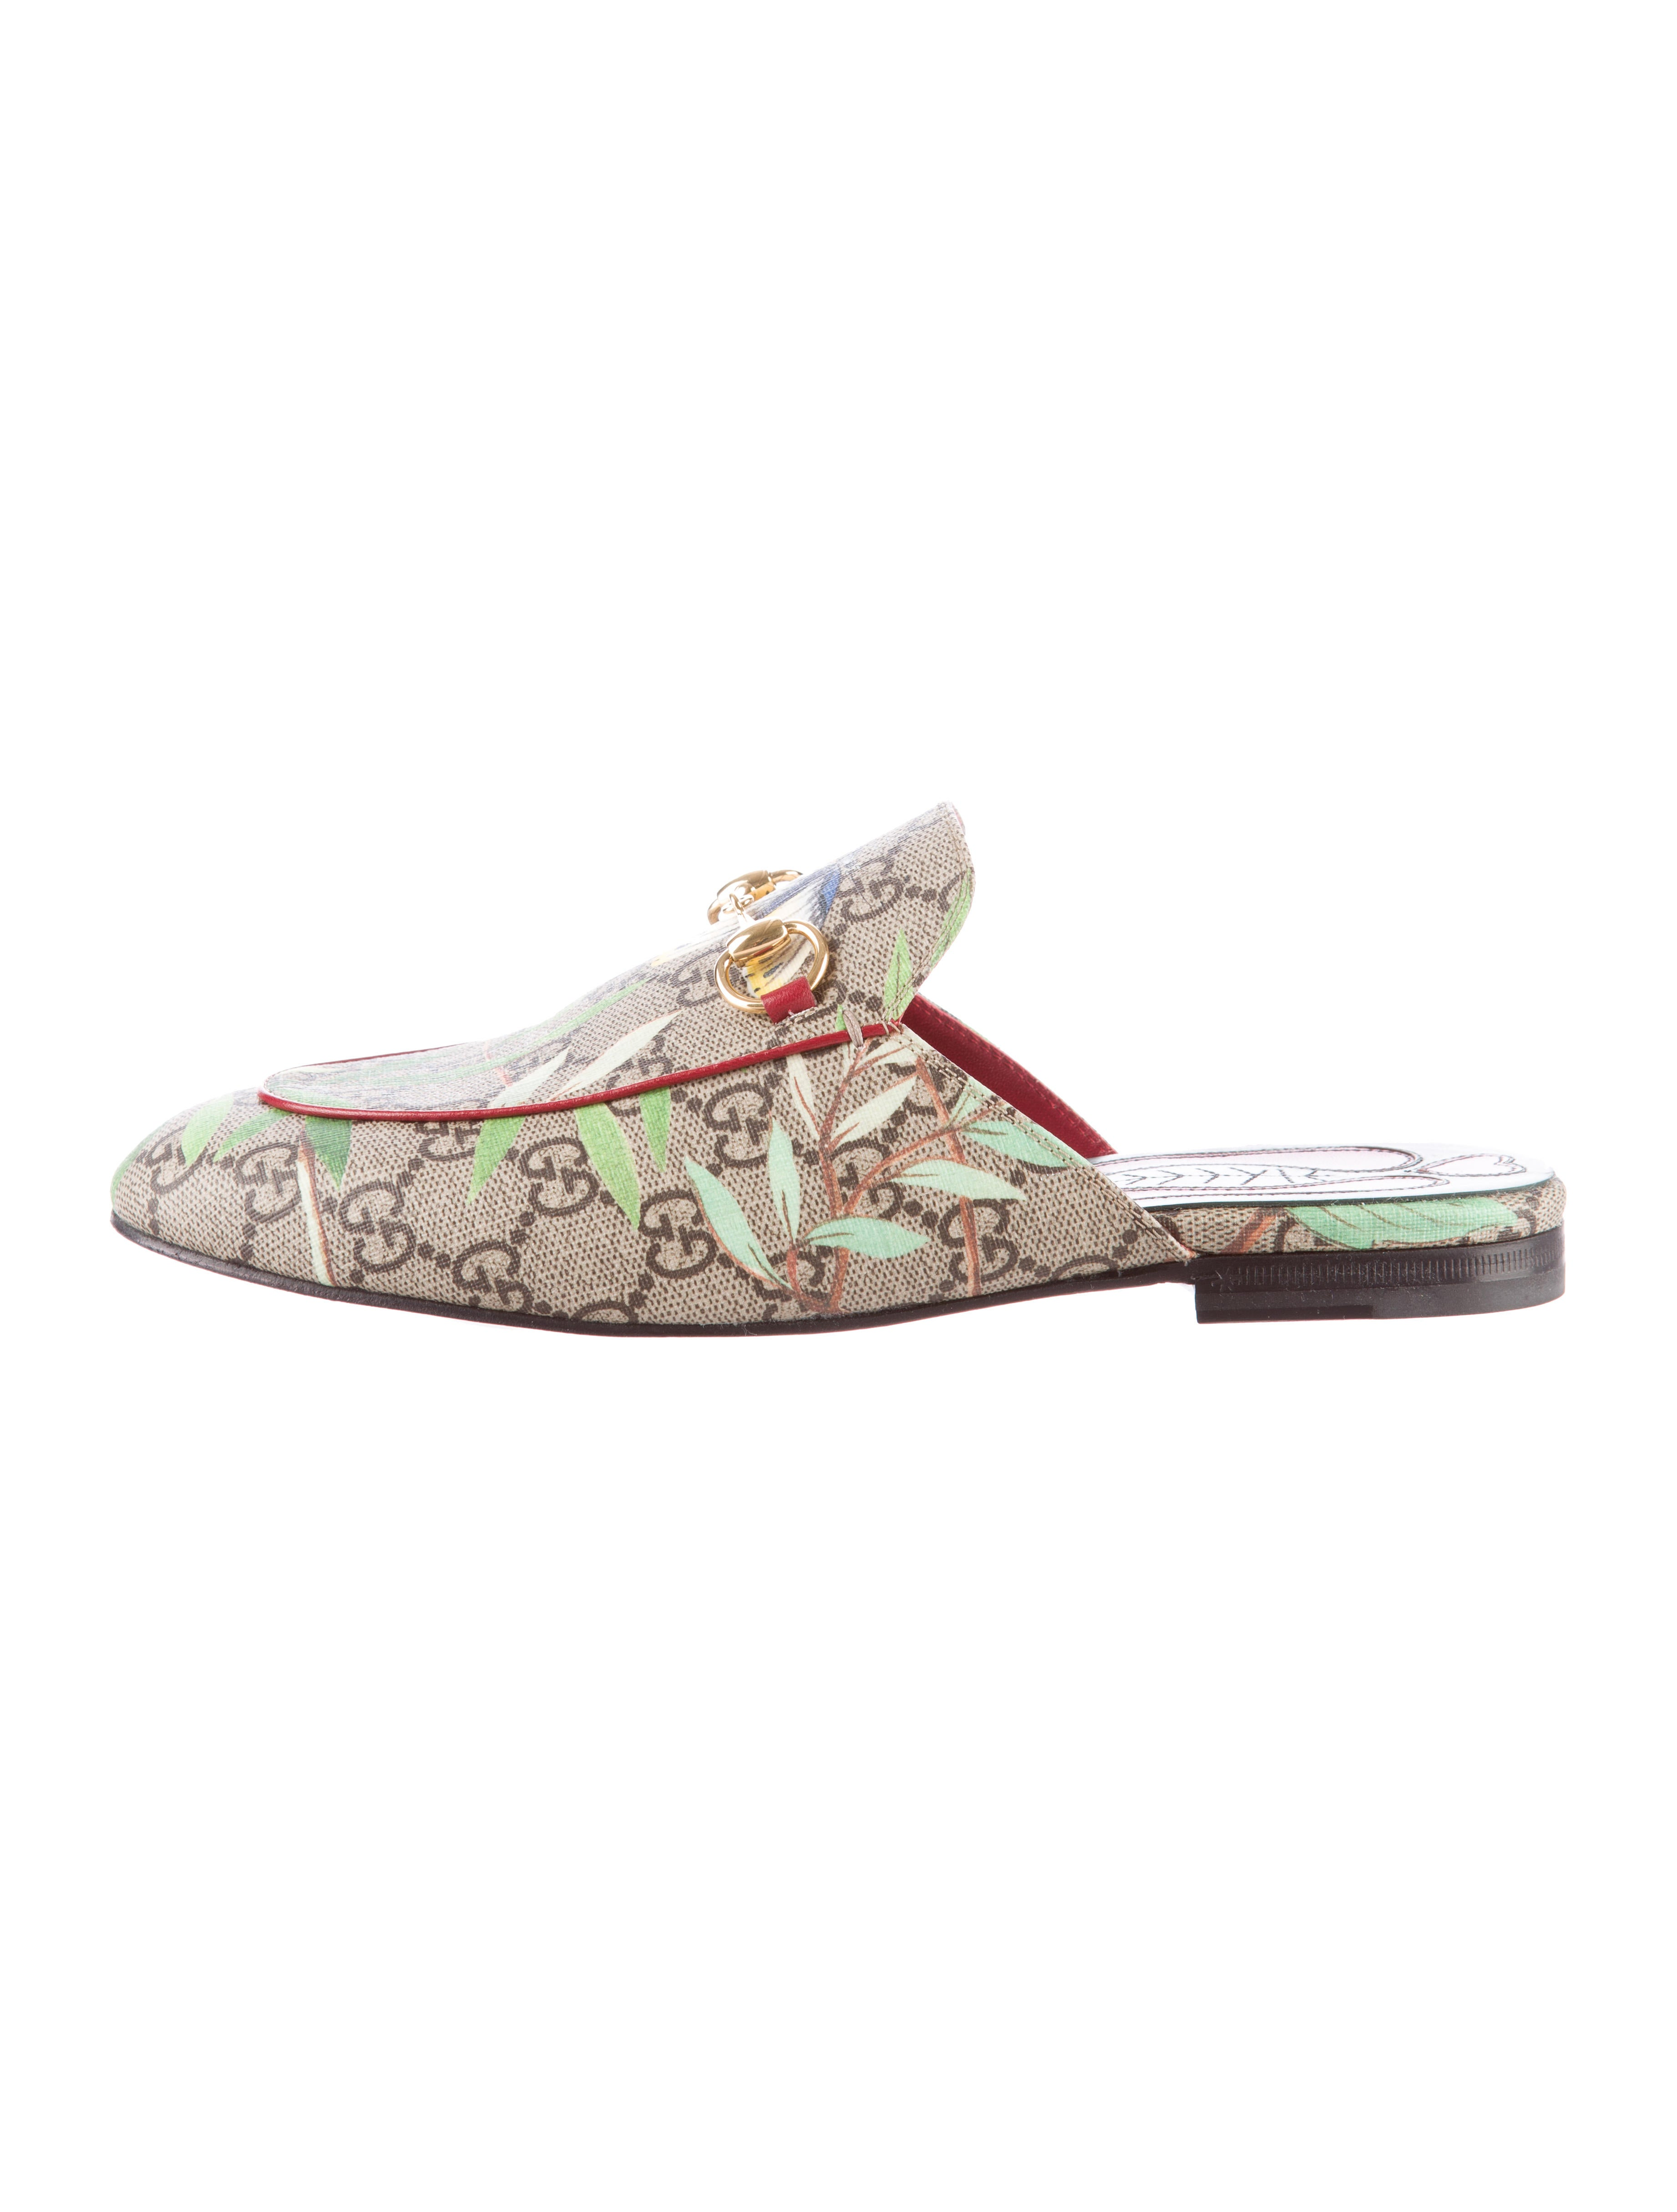 Gucci GG Supreme Tian Princetown Mules w Tags Shoes  : GUC1029871enlarged from www.therealreal.com size 3685 x 4861 jpeg 484kB